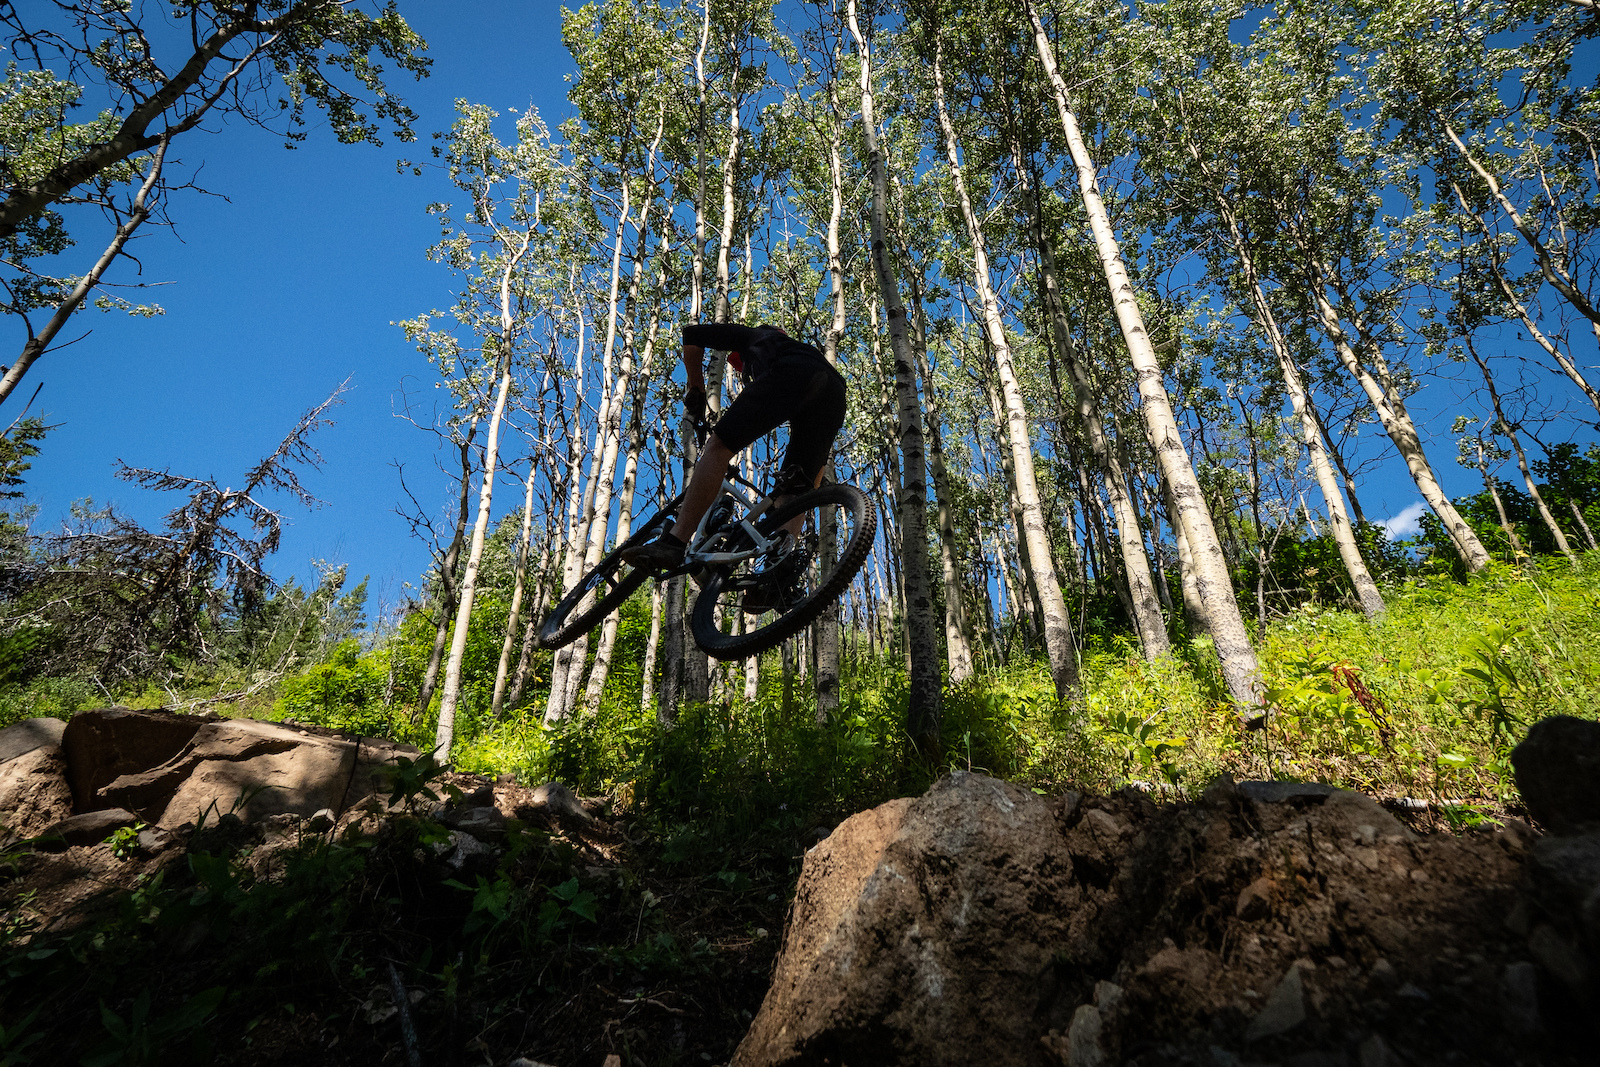 Hogzilla is the newest addition to Boer Mountain with 5km of A-Line style jumps drops and berms.